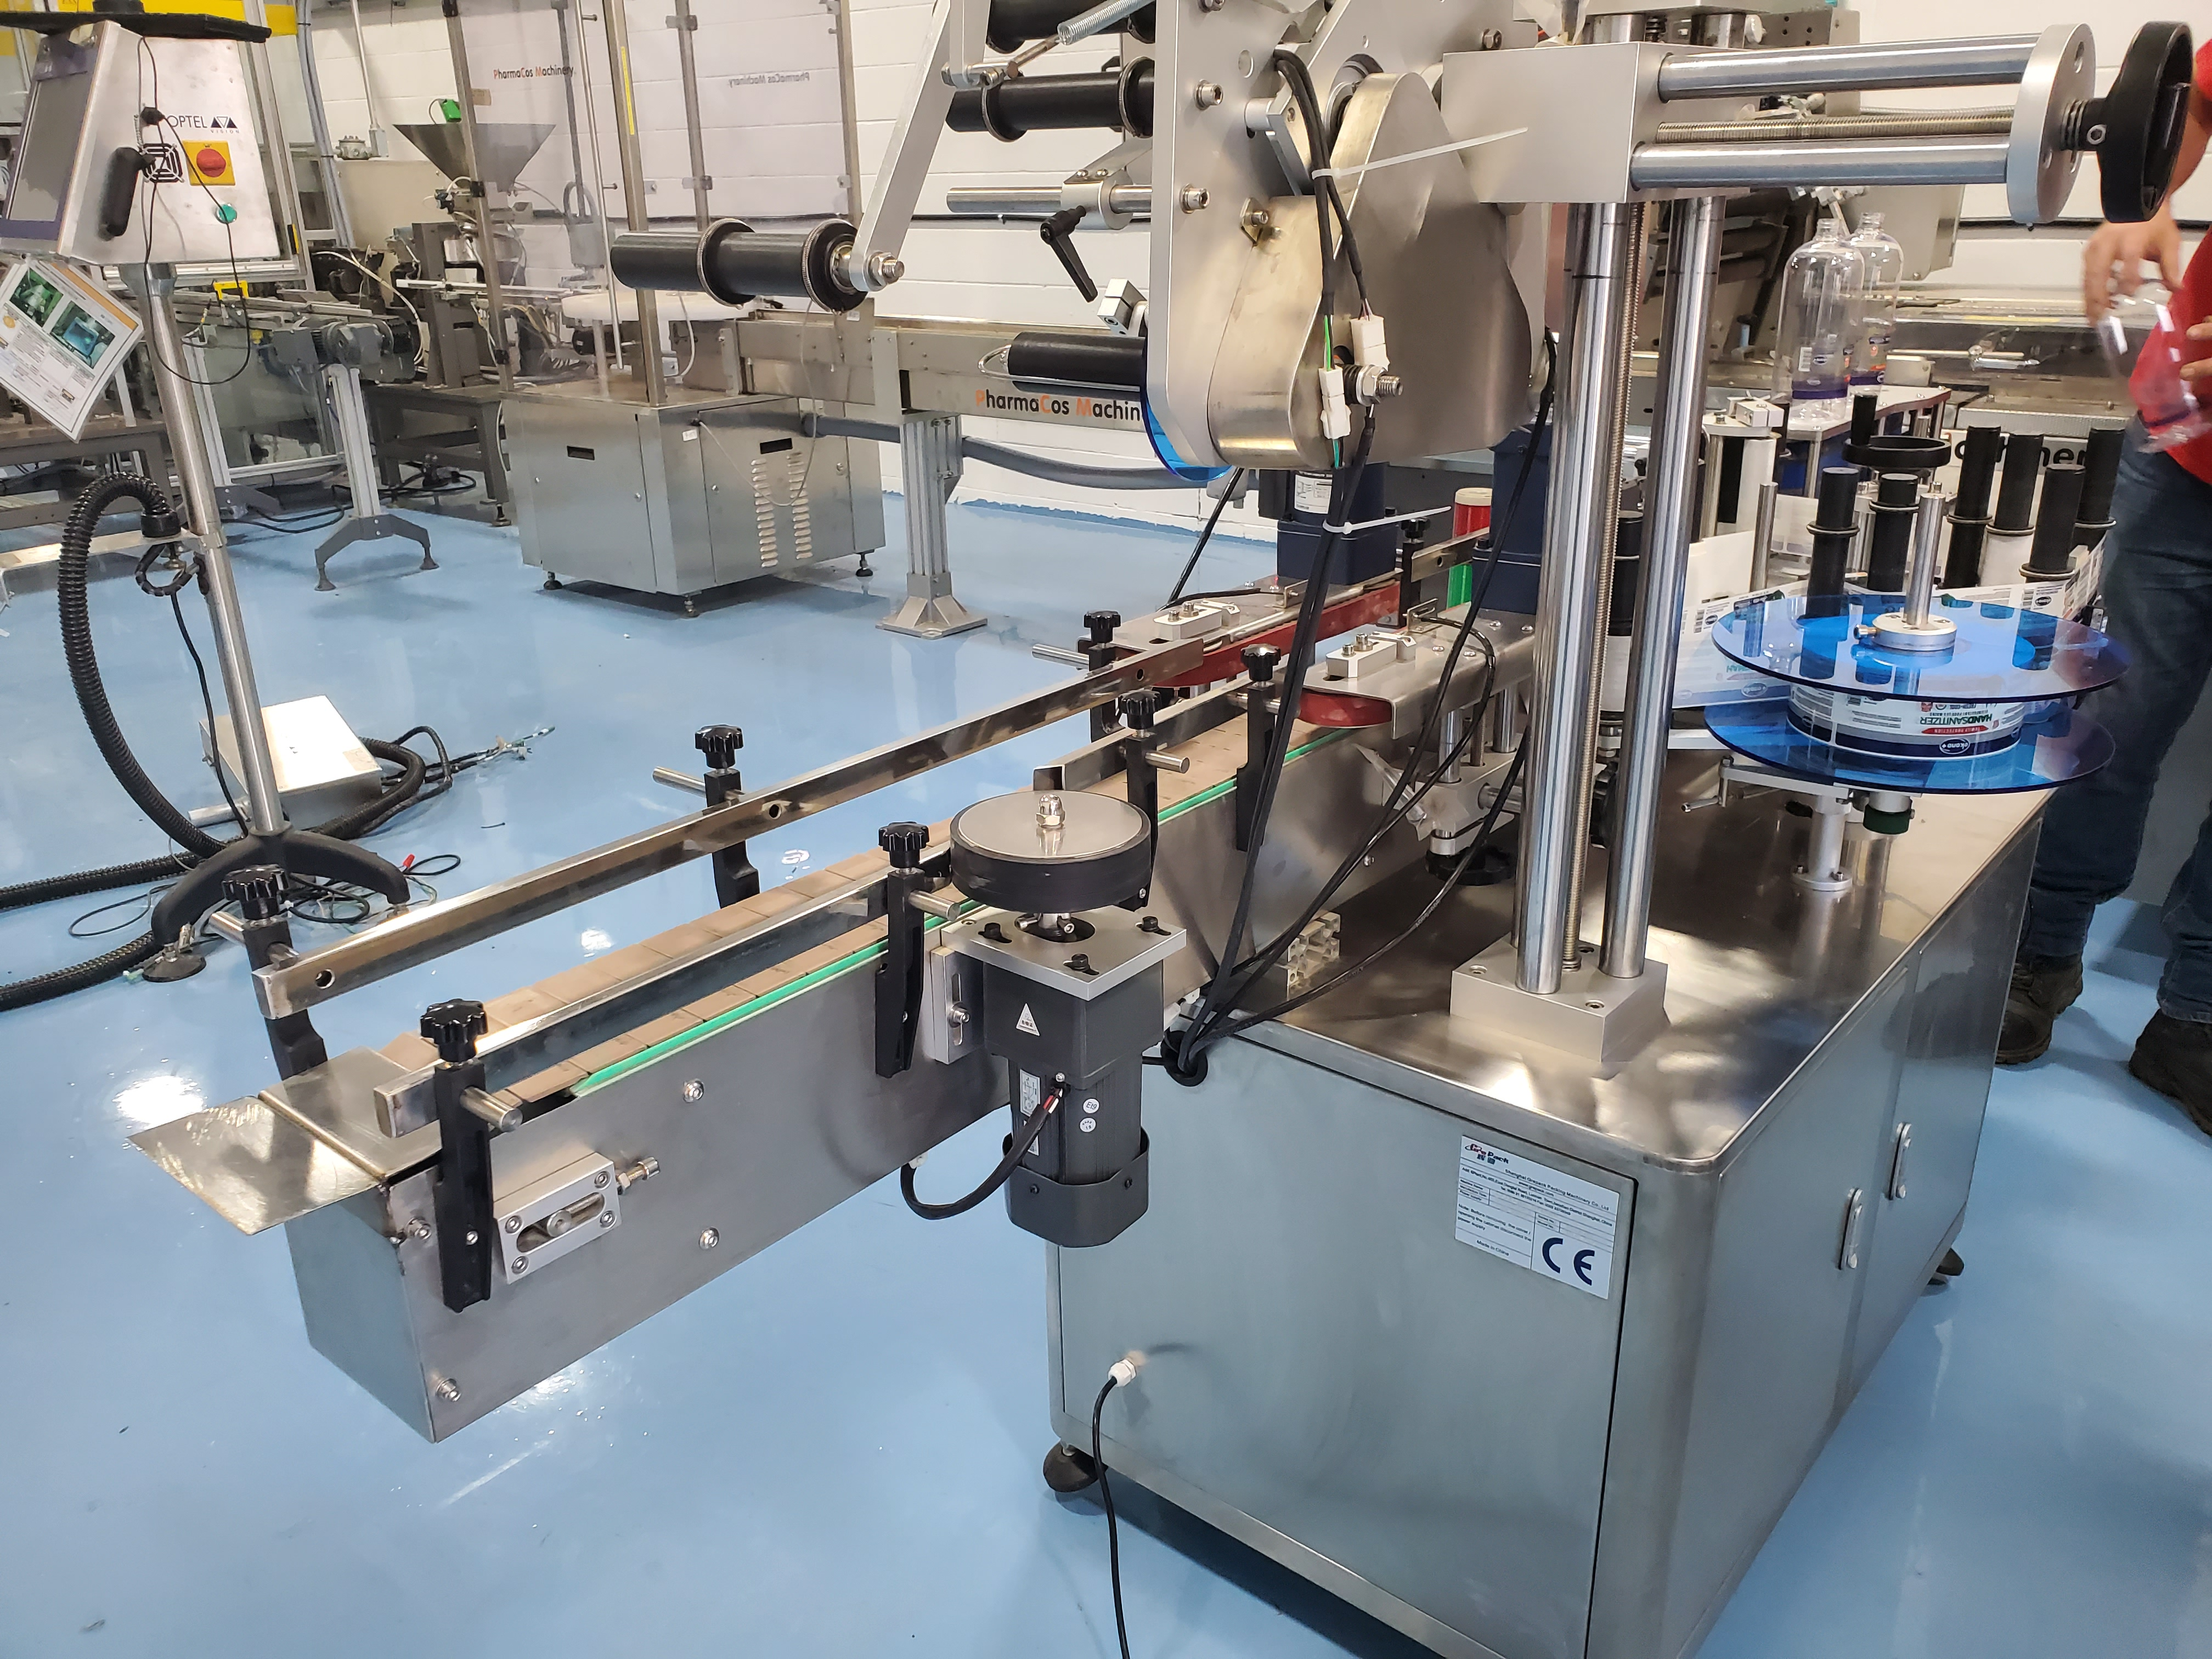 Grepack Packing Machine Integrated Wrap Around and Top Down Labeler with Conveyor - Image 4 of 8